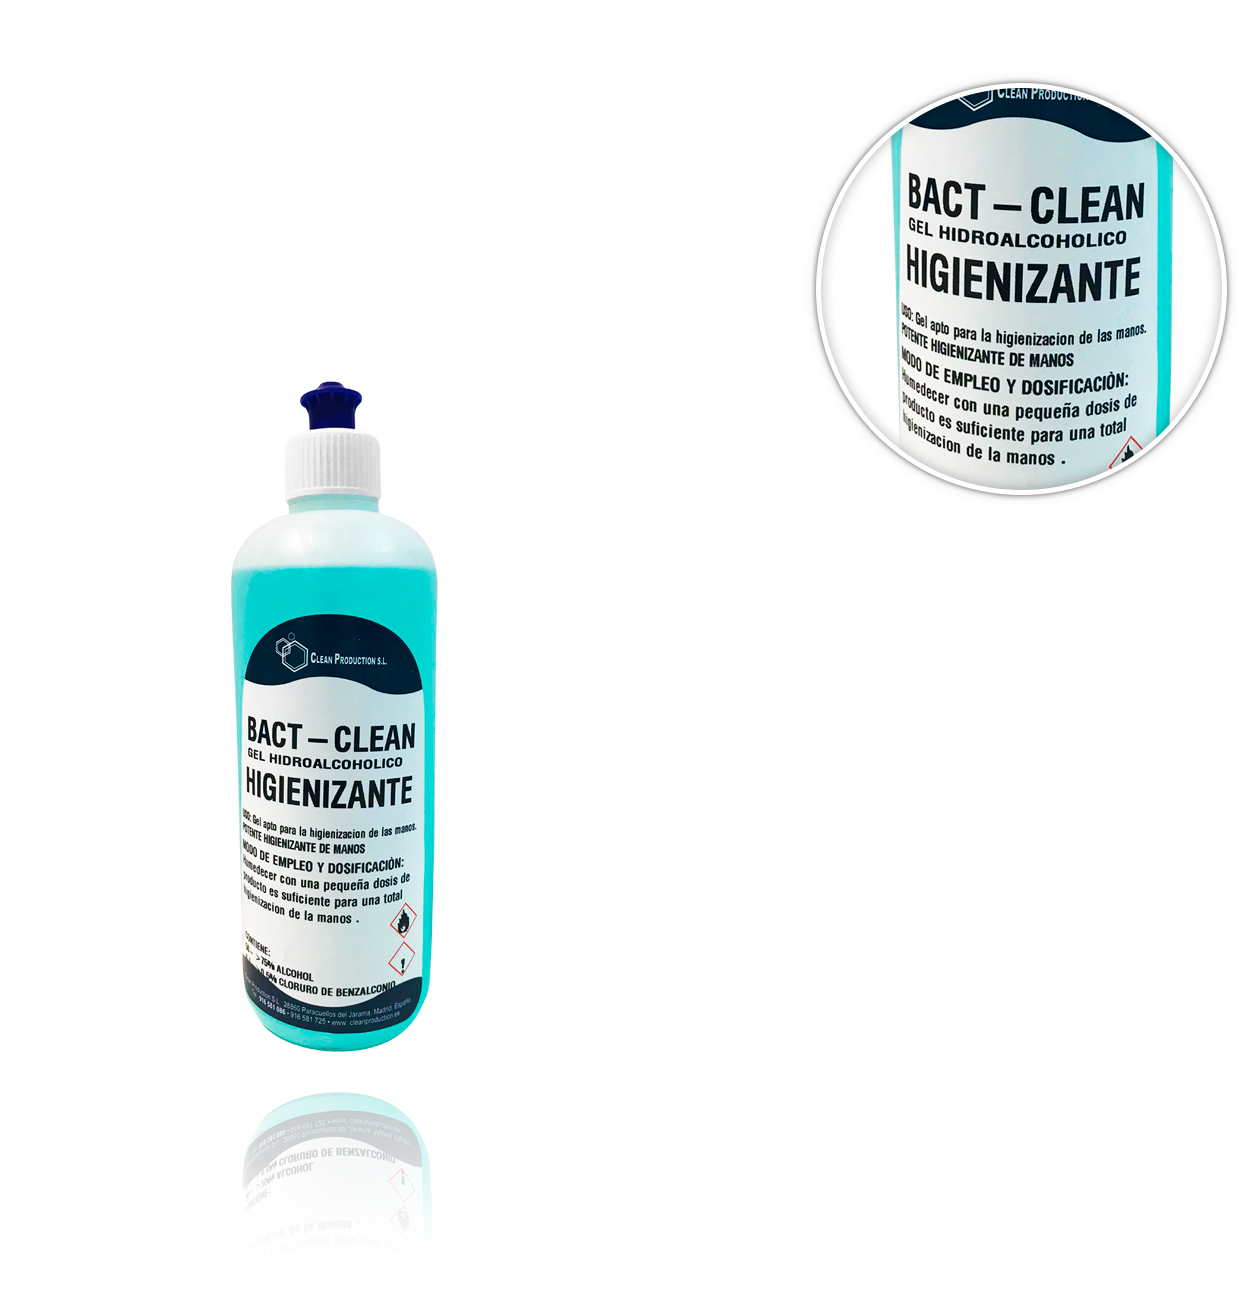 GEL HIDROALCOHOLICO 500ml  70%  PARA MANOS BACT CLEAN HIGIENIZANTE